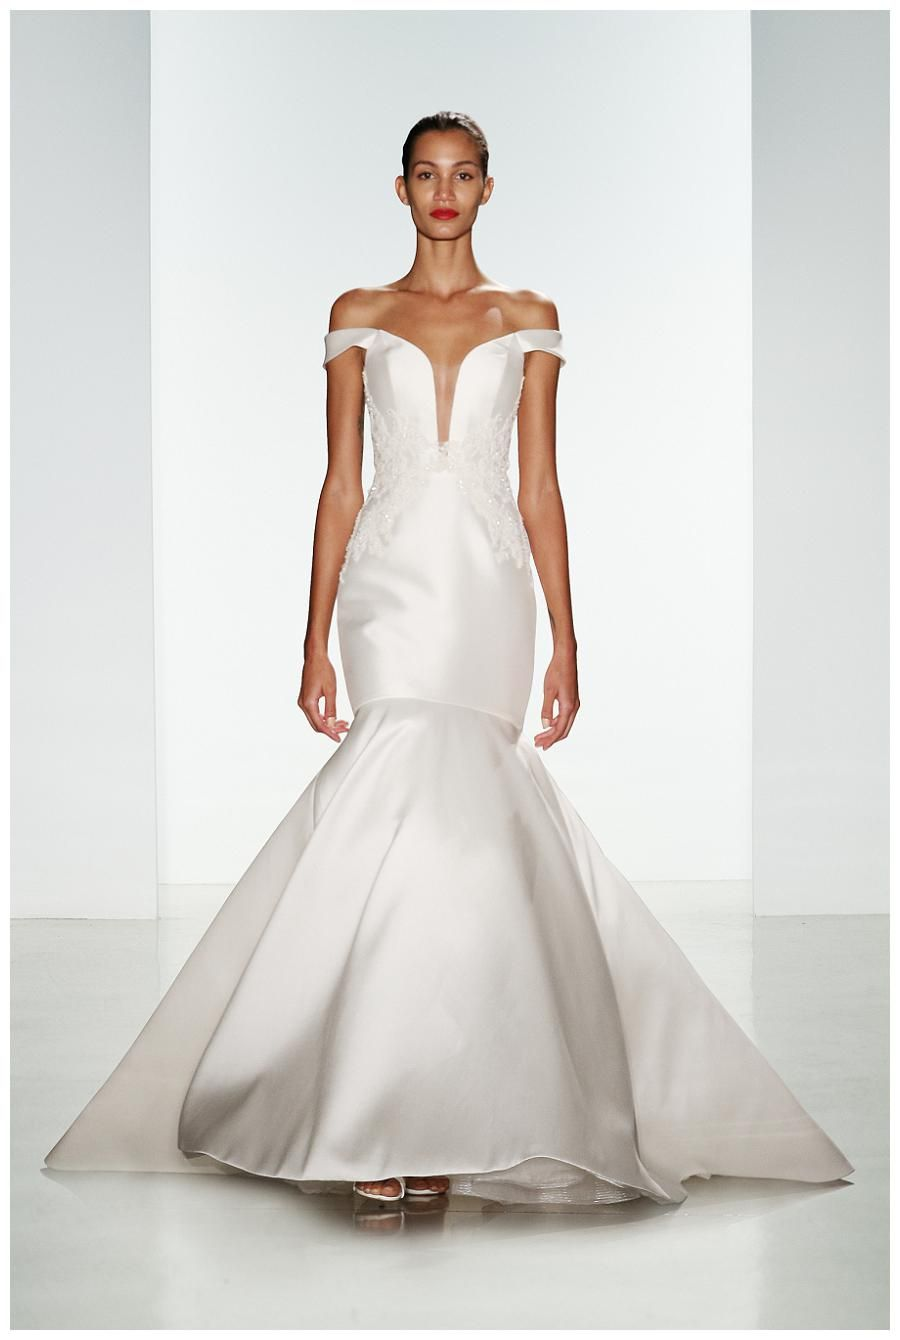 Elite wedding dresses  Wedding dress from the Kenneth Pool Fall  collection  Bridal